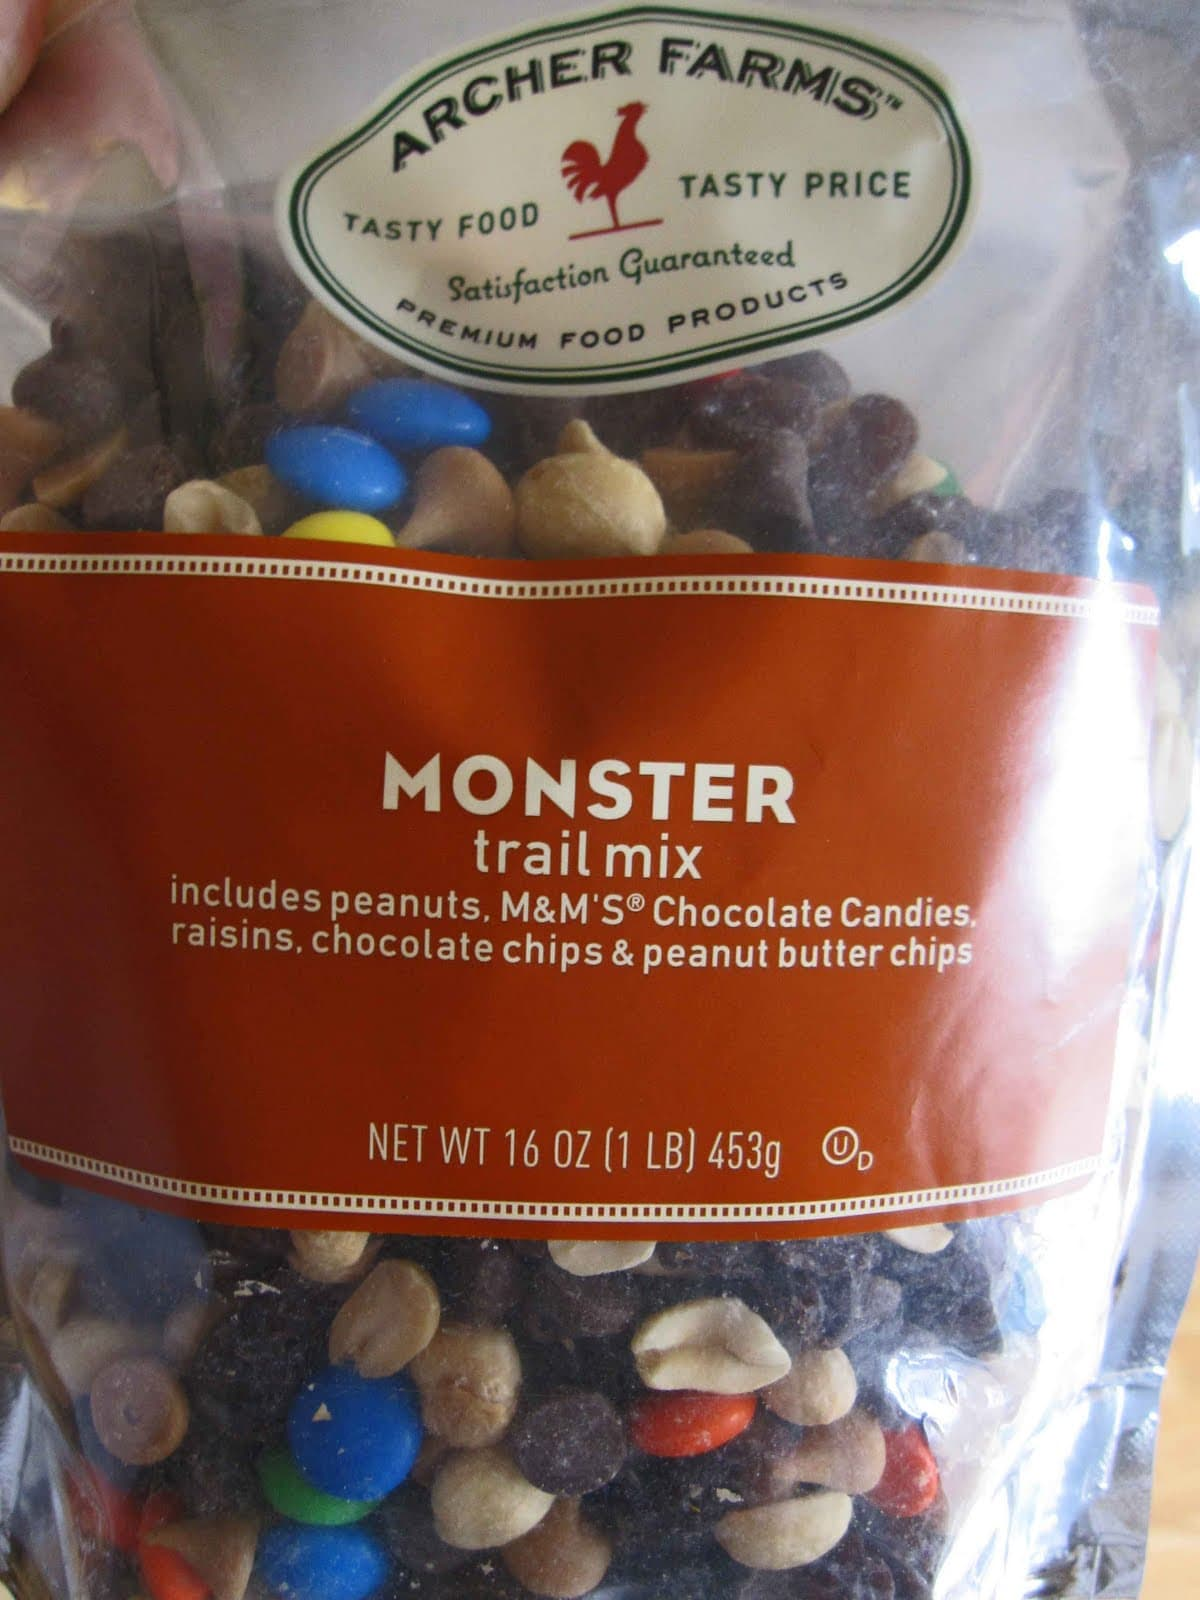 A package of Archer Farms Monster Trail Mix